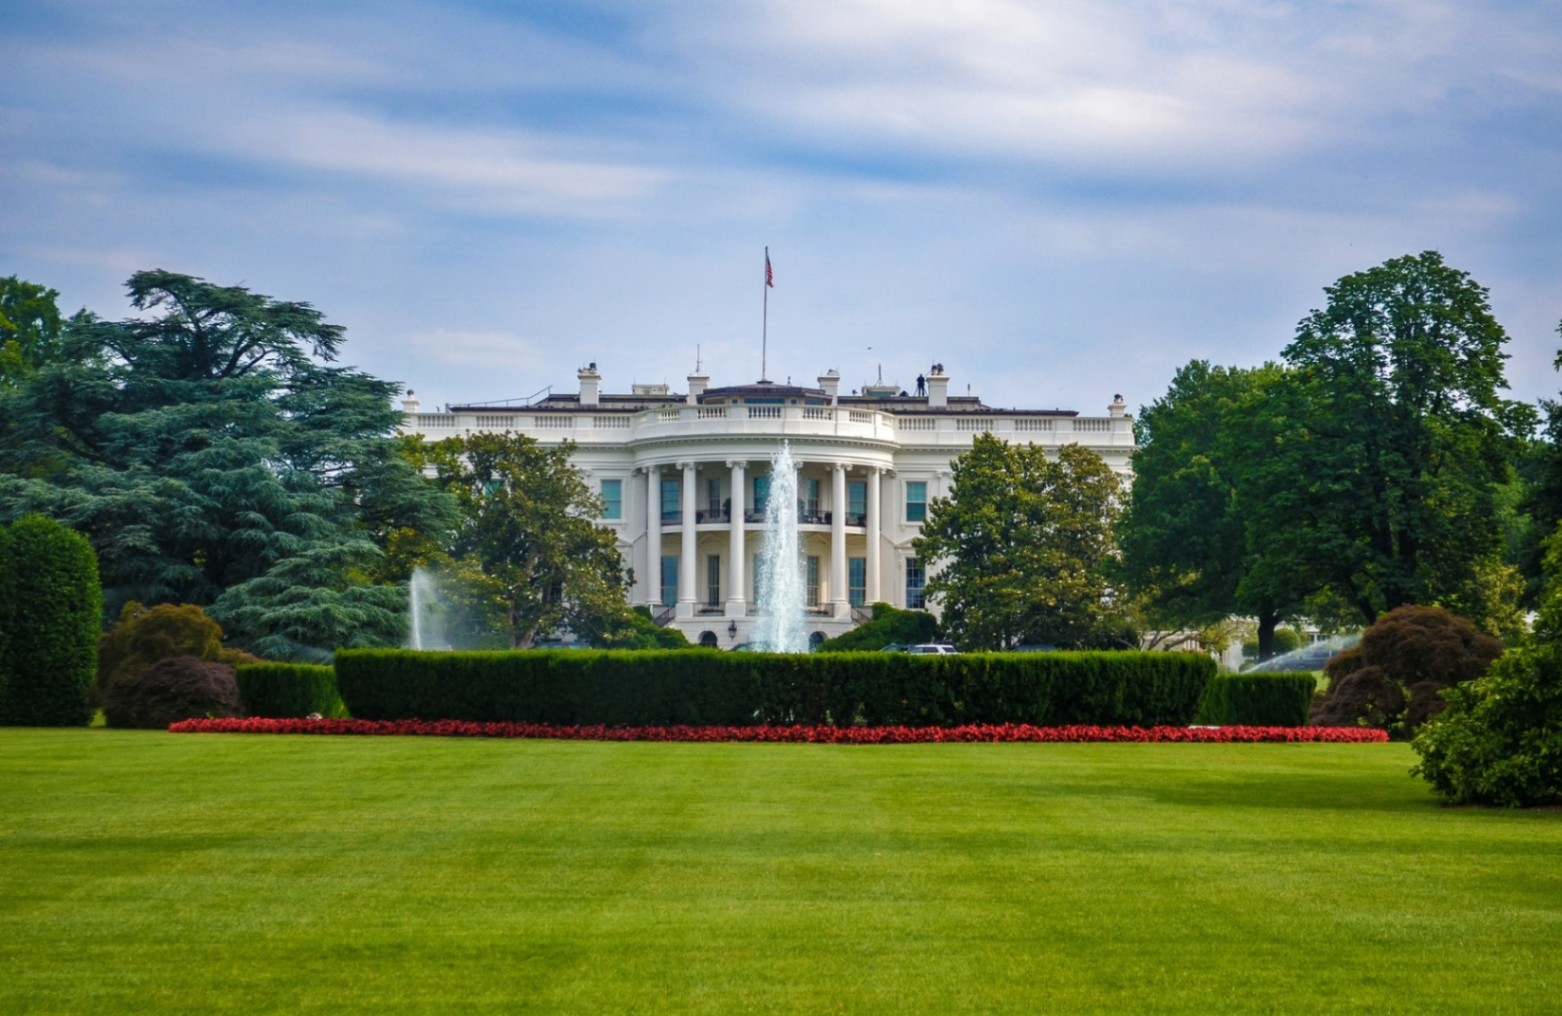 Strange Facts About Every American President to Date